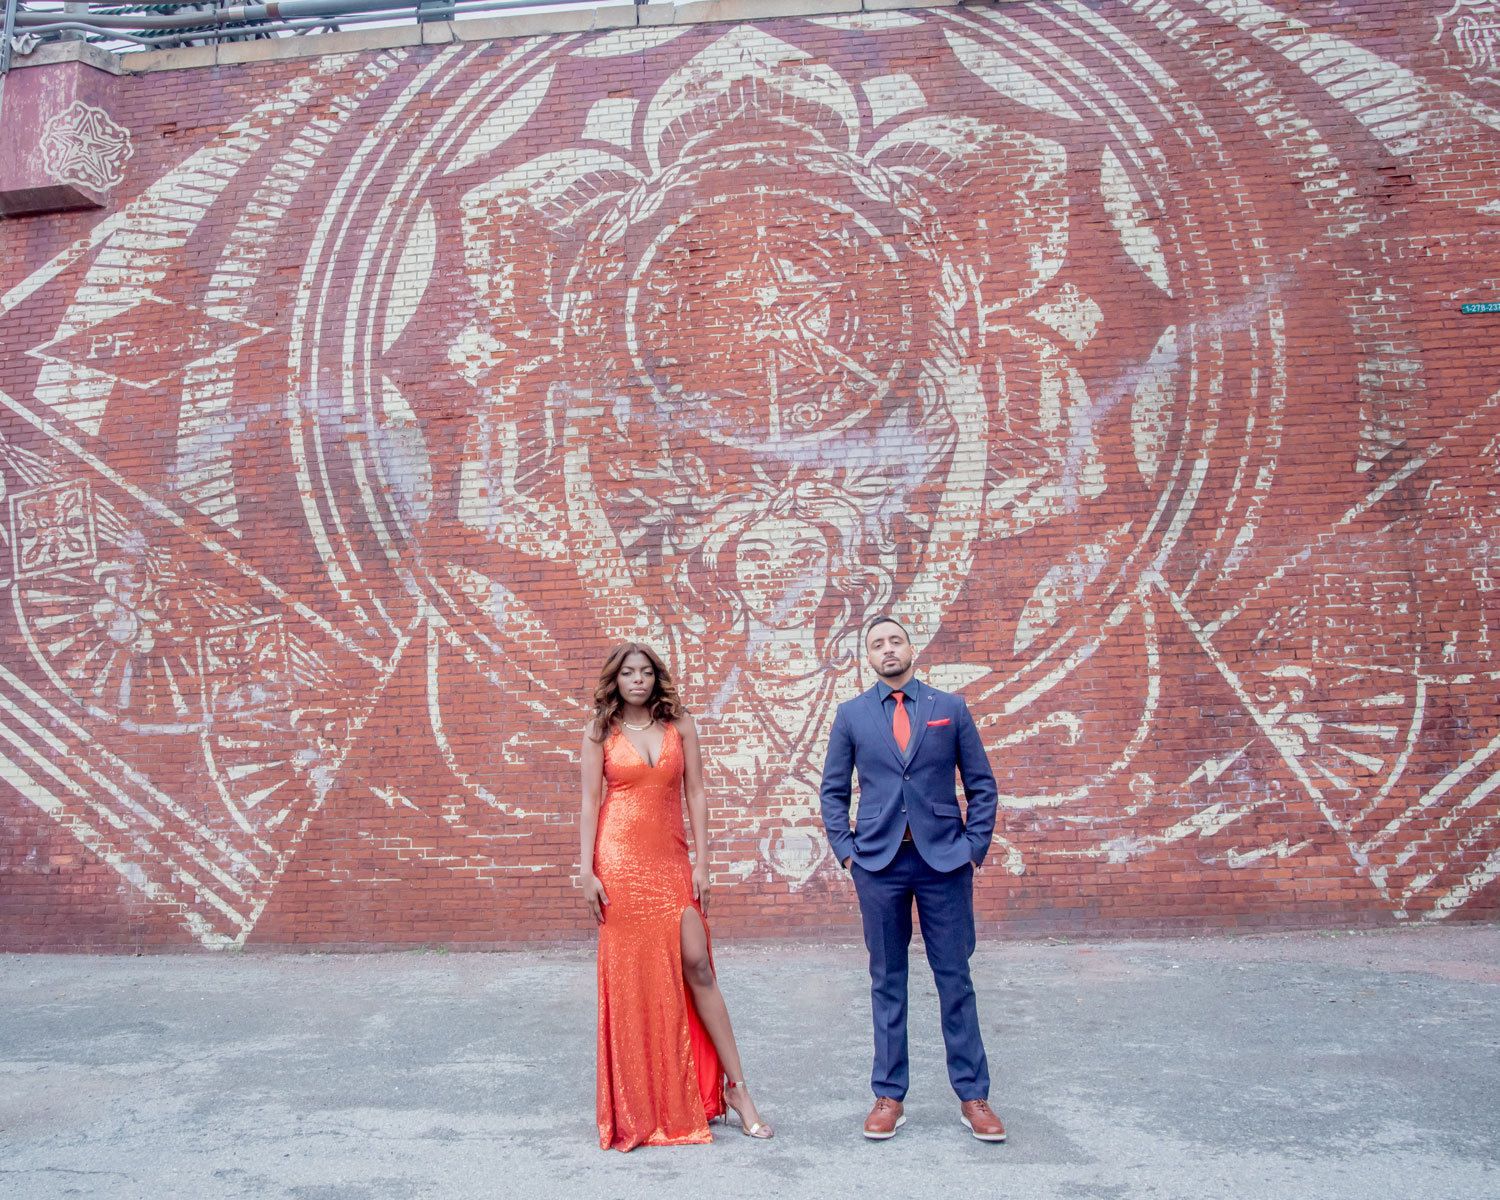 The Dumbo neighborhood Brooklyn new york engagement shoot in front of wall mural